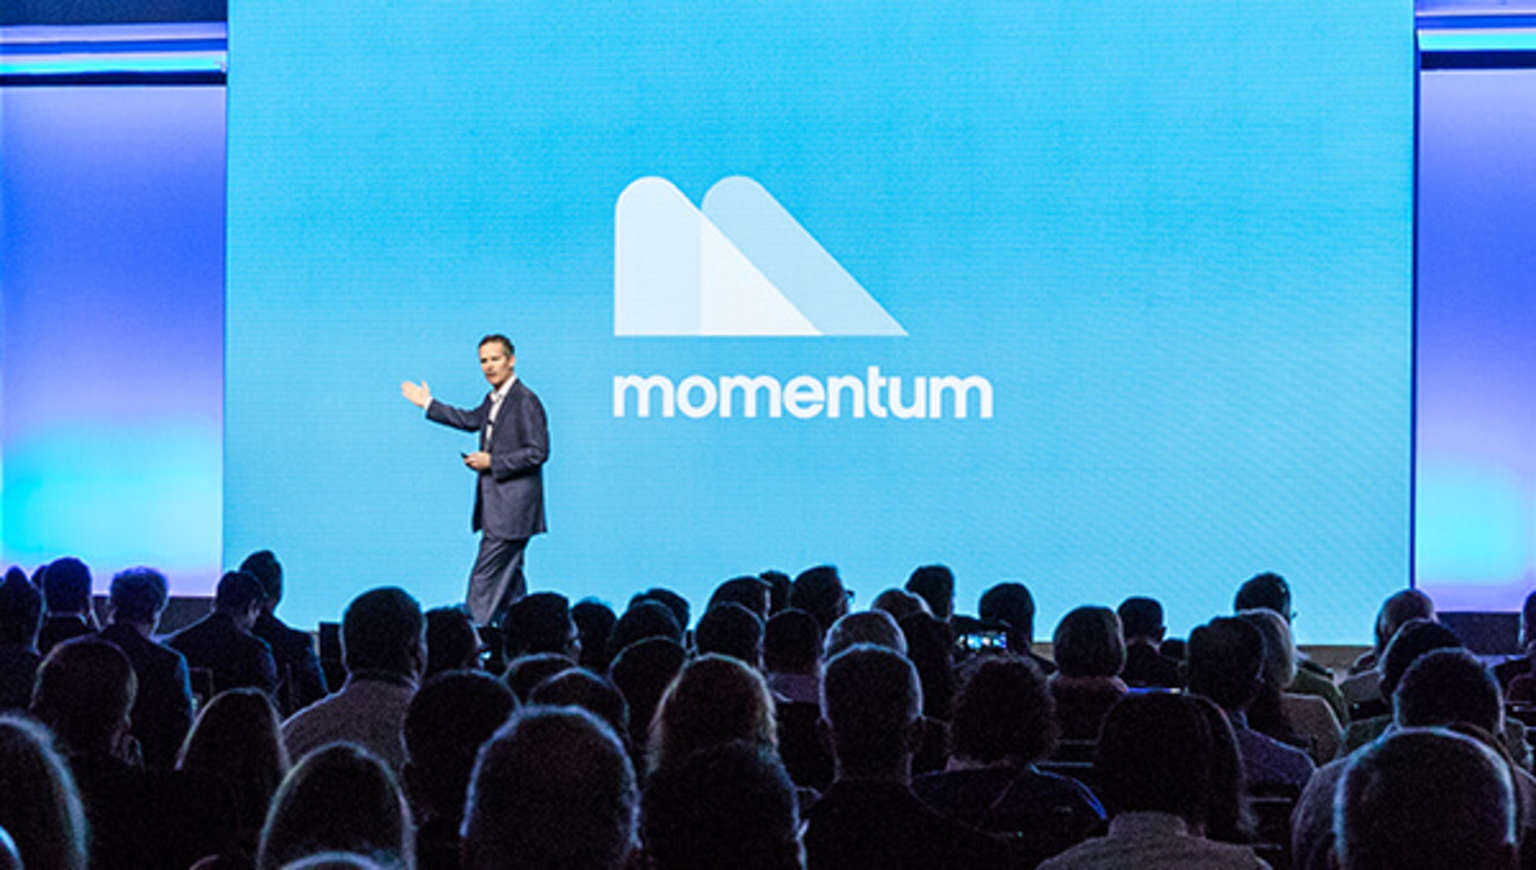 Get a summary of Momentum '17 sessions